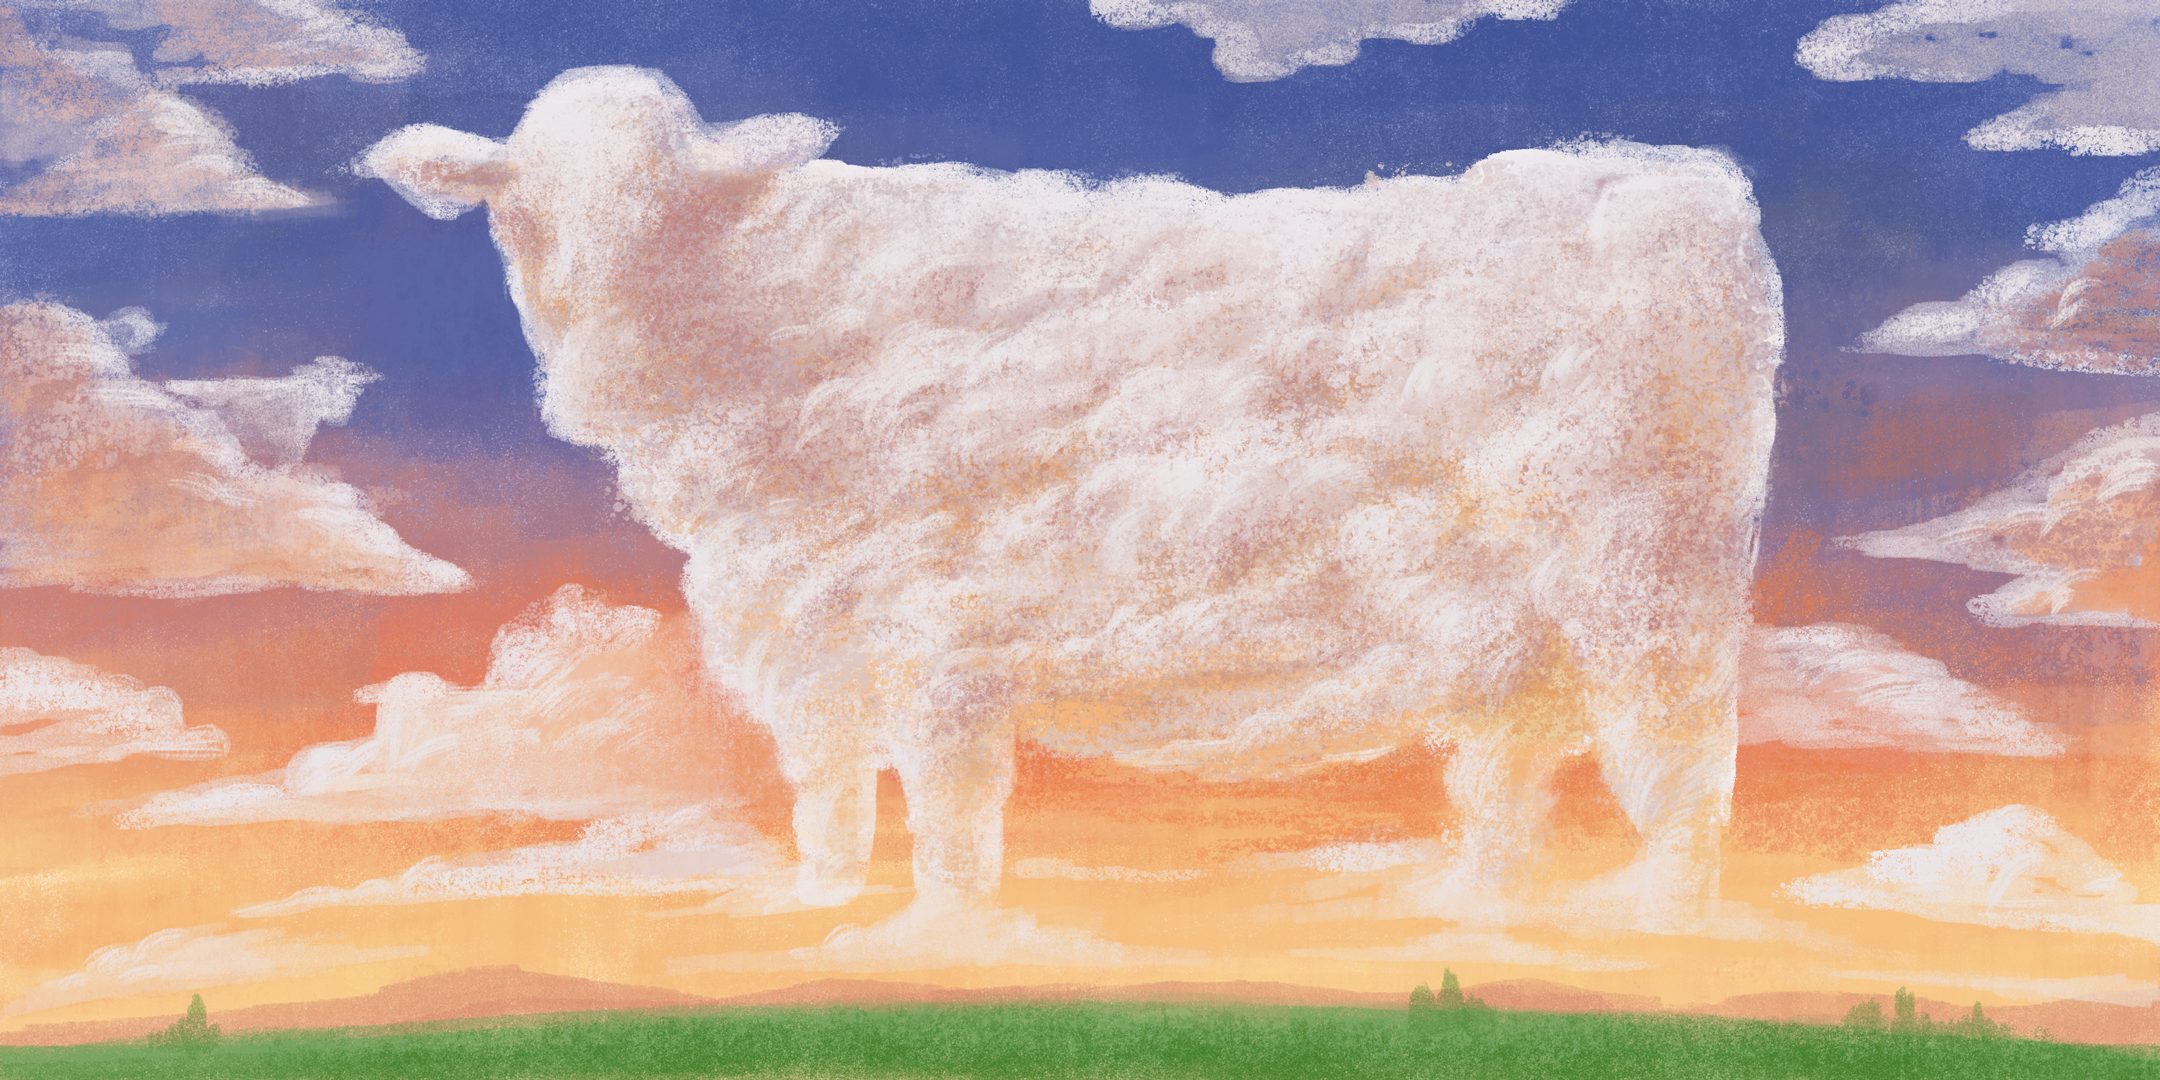 Abstract image of a fluffy cow made of clouds in a pastel sky and pasture